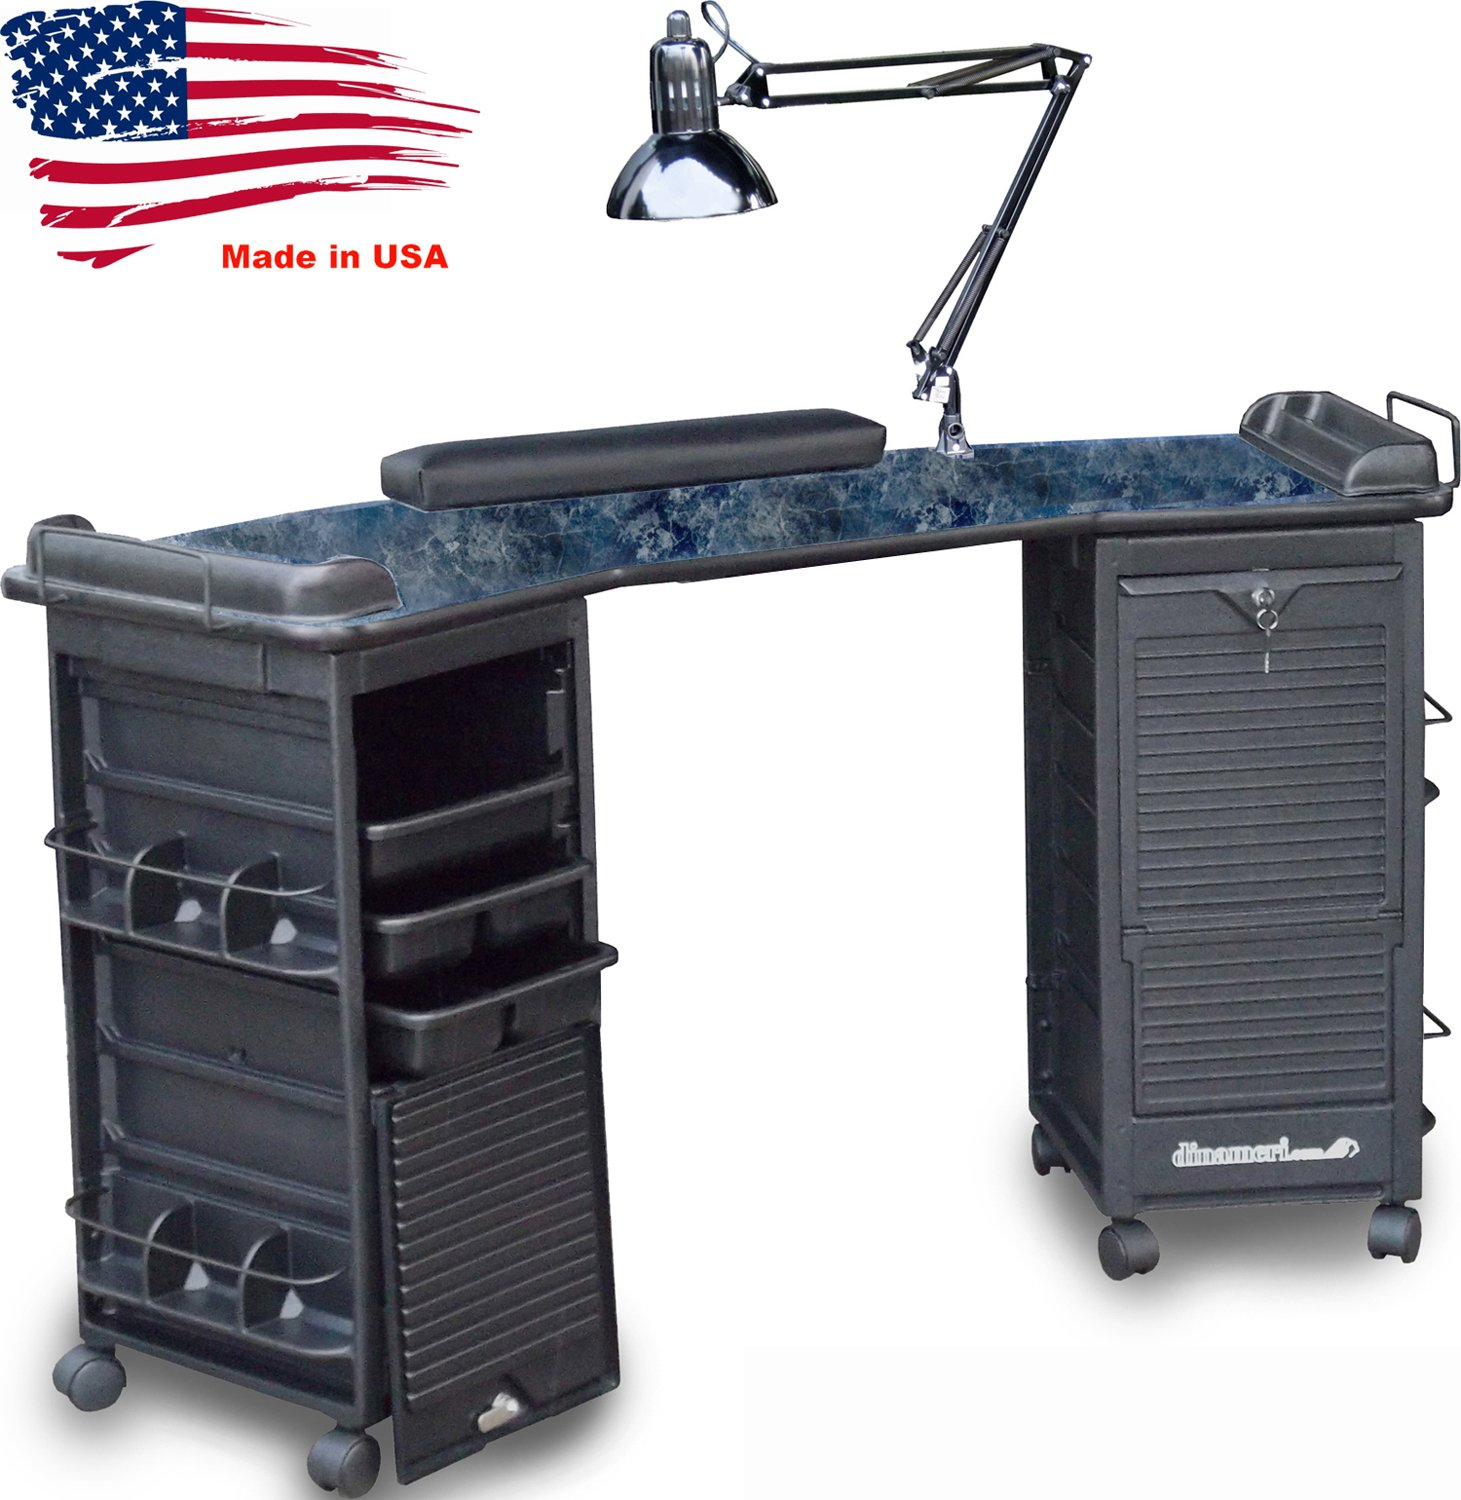 M602 Manicure Nail Table Double Lockable Cabinet Black Marble Lam.top by Dina Meri